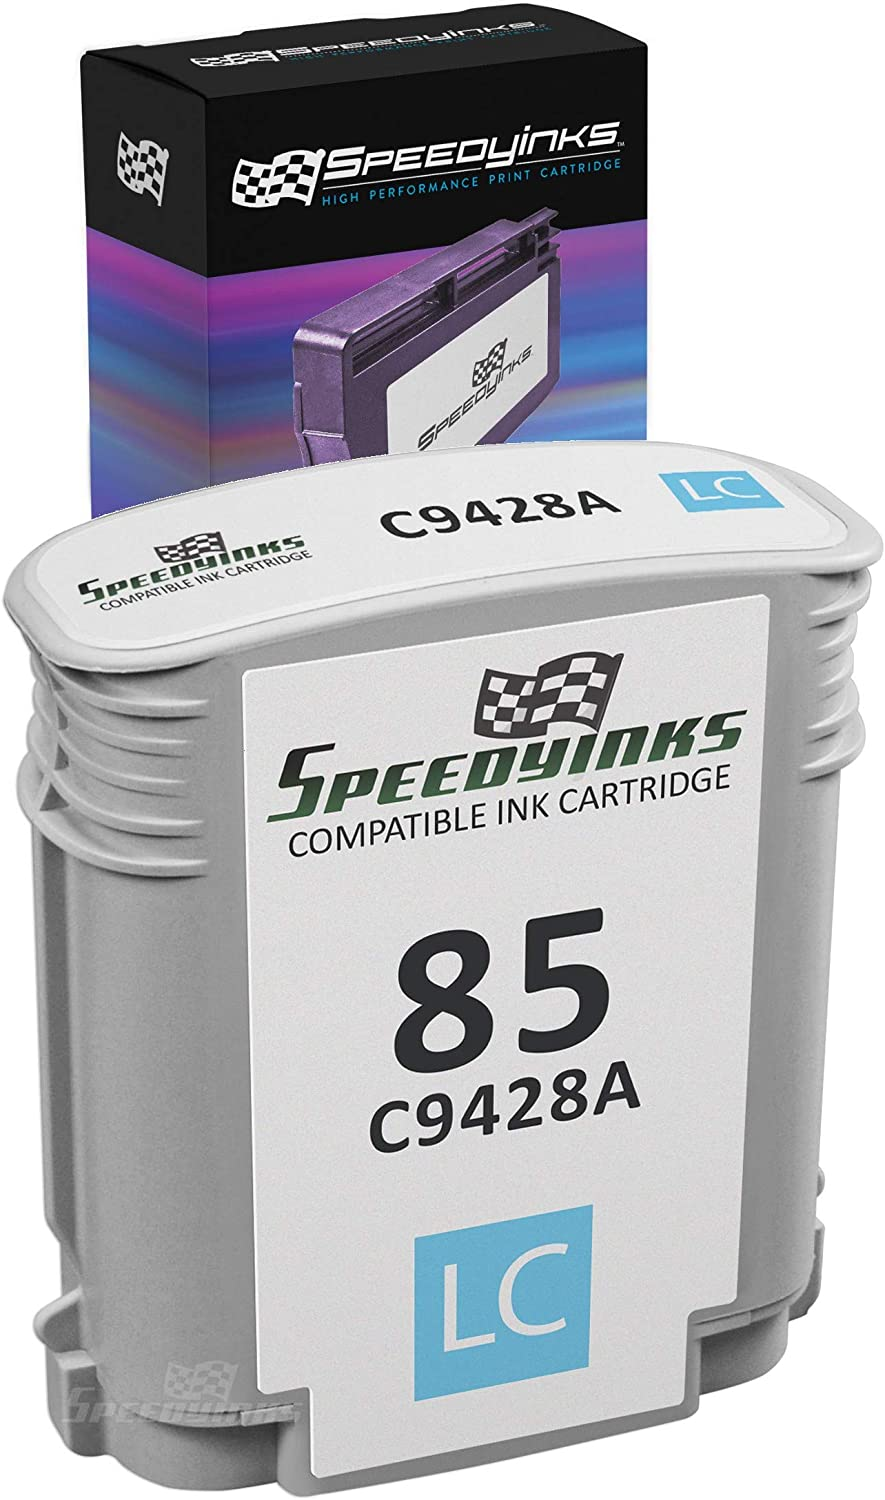 Speedy Inks Remanufactured Ink Cartridge Replacement for HP 85 / C9428A (Light Cyan)